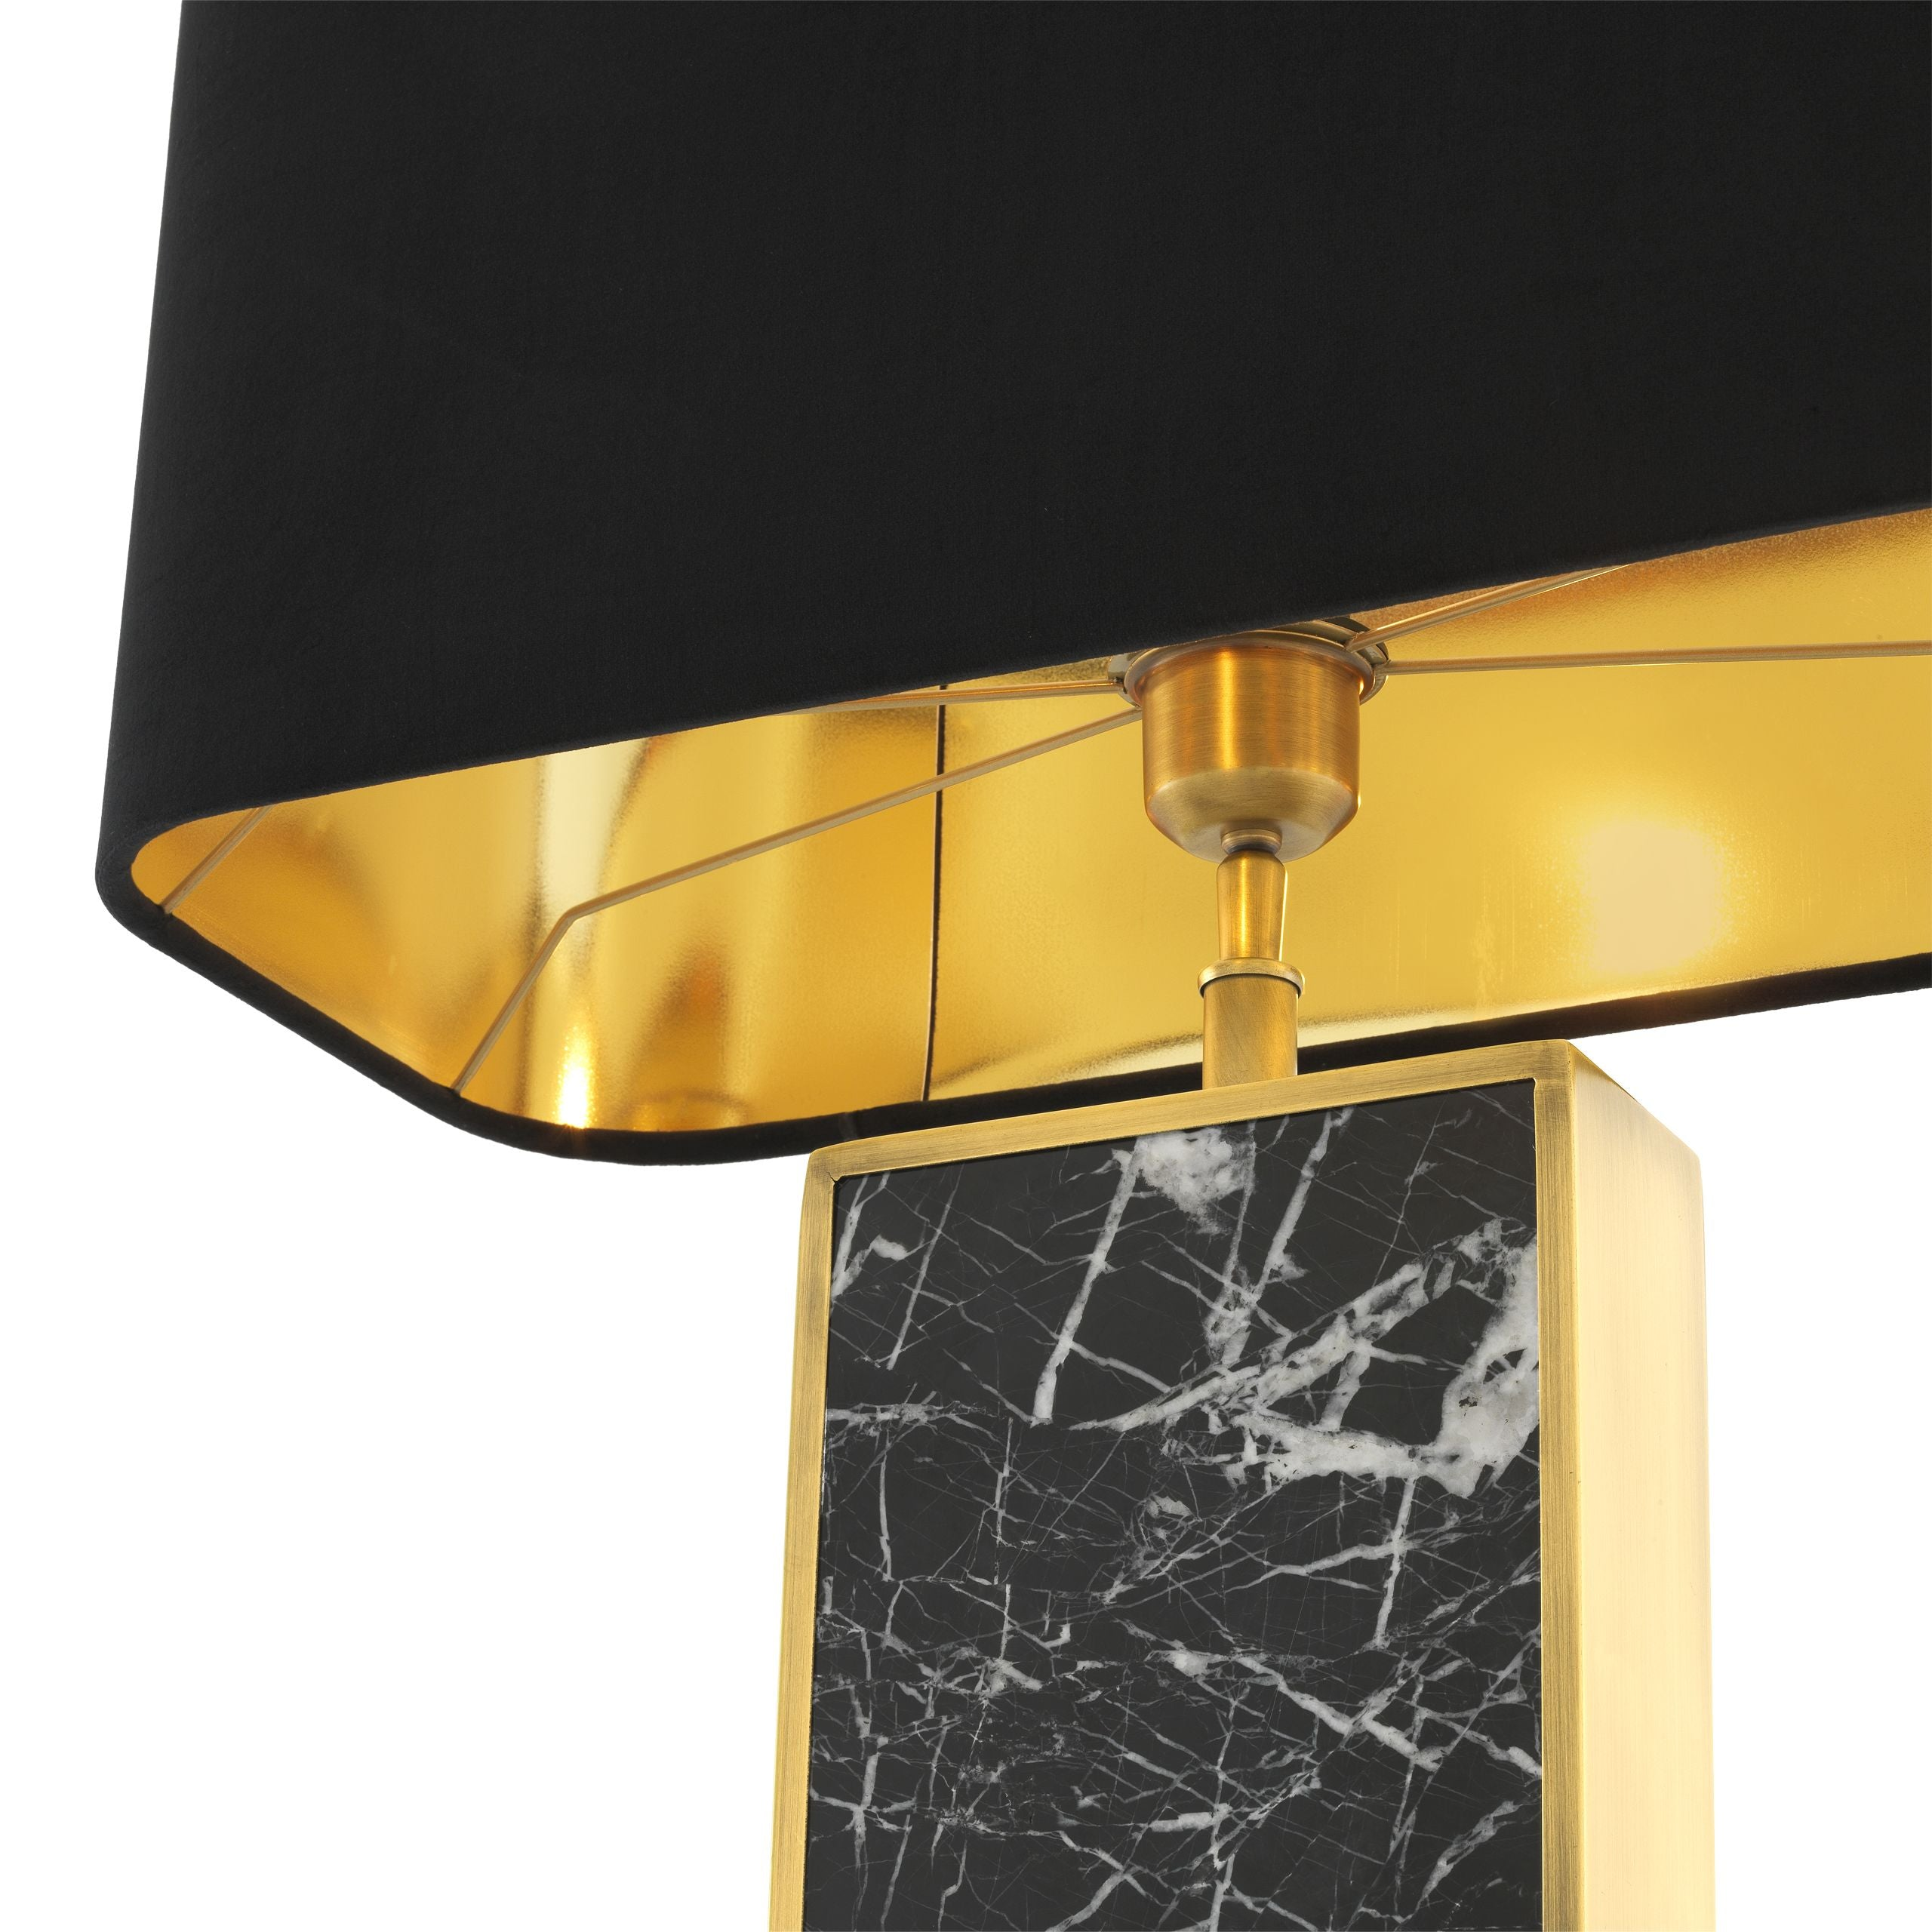 Table lamp Arrive Black Marble & Antique Brass